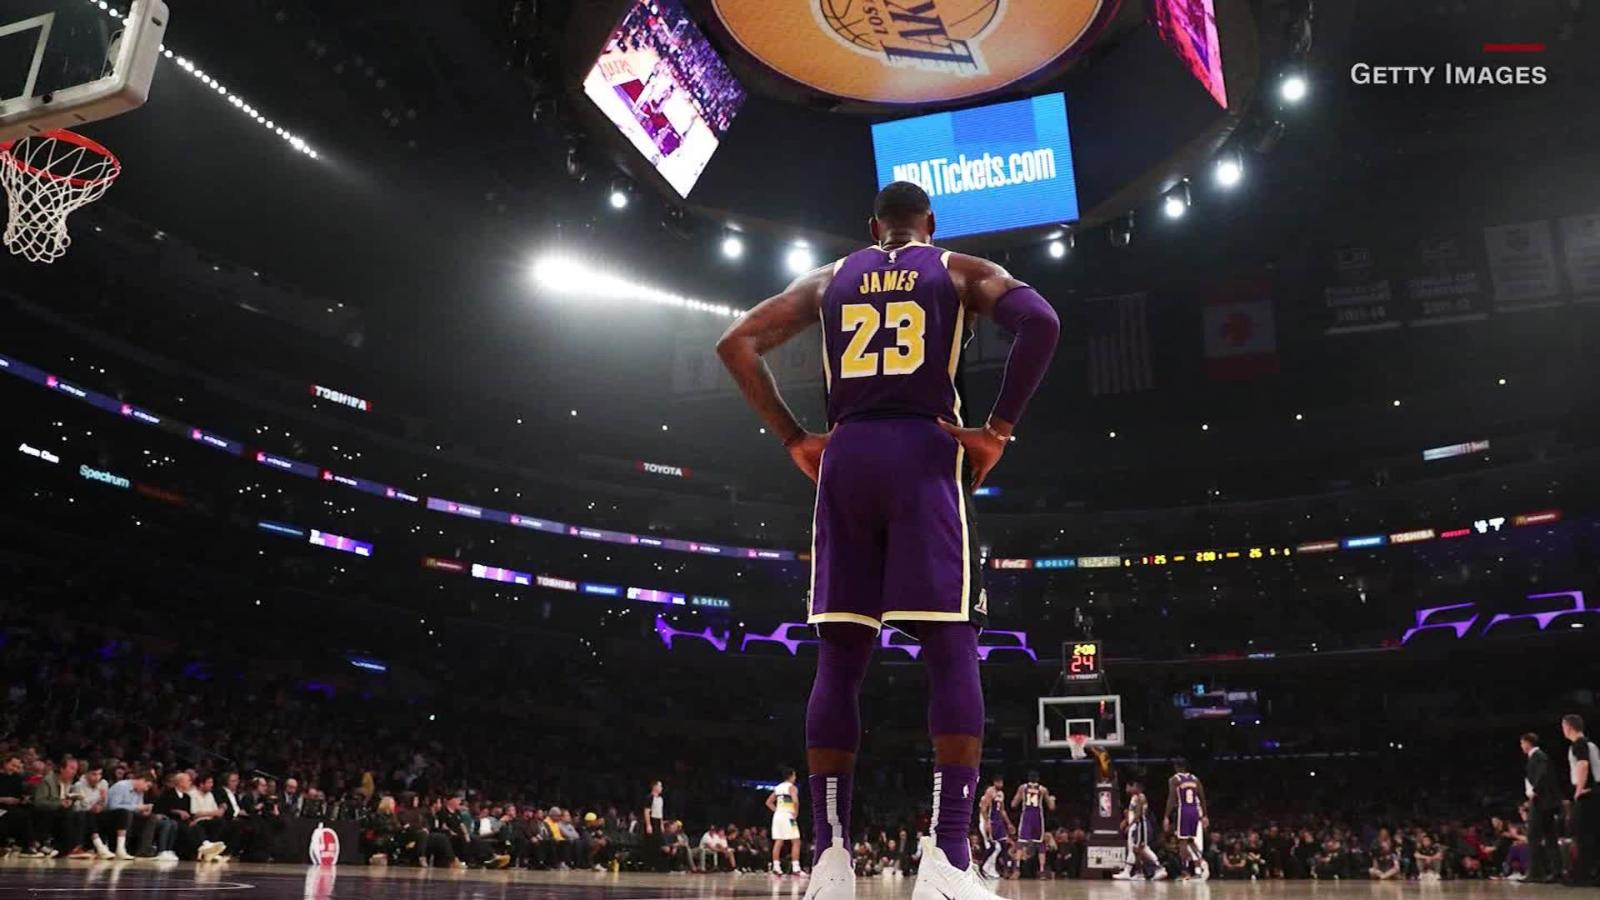 NBA to exempt players from marijuana testing for 2020-21 season - THE SPORTS ROOM